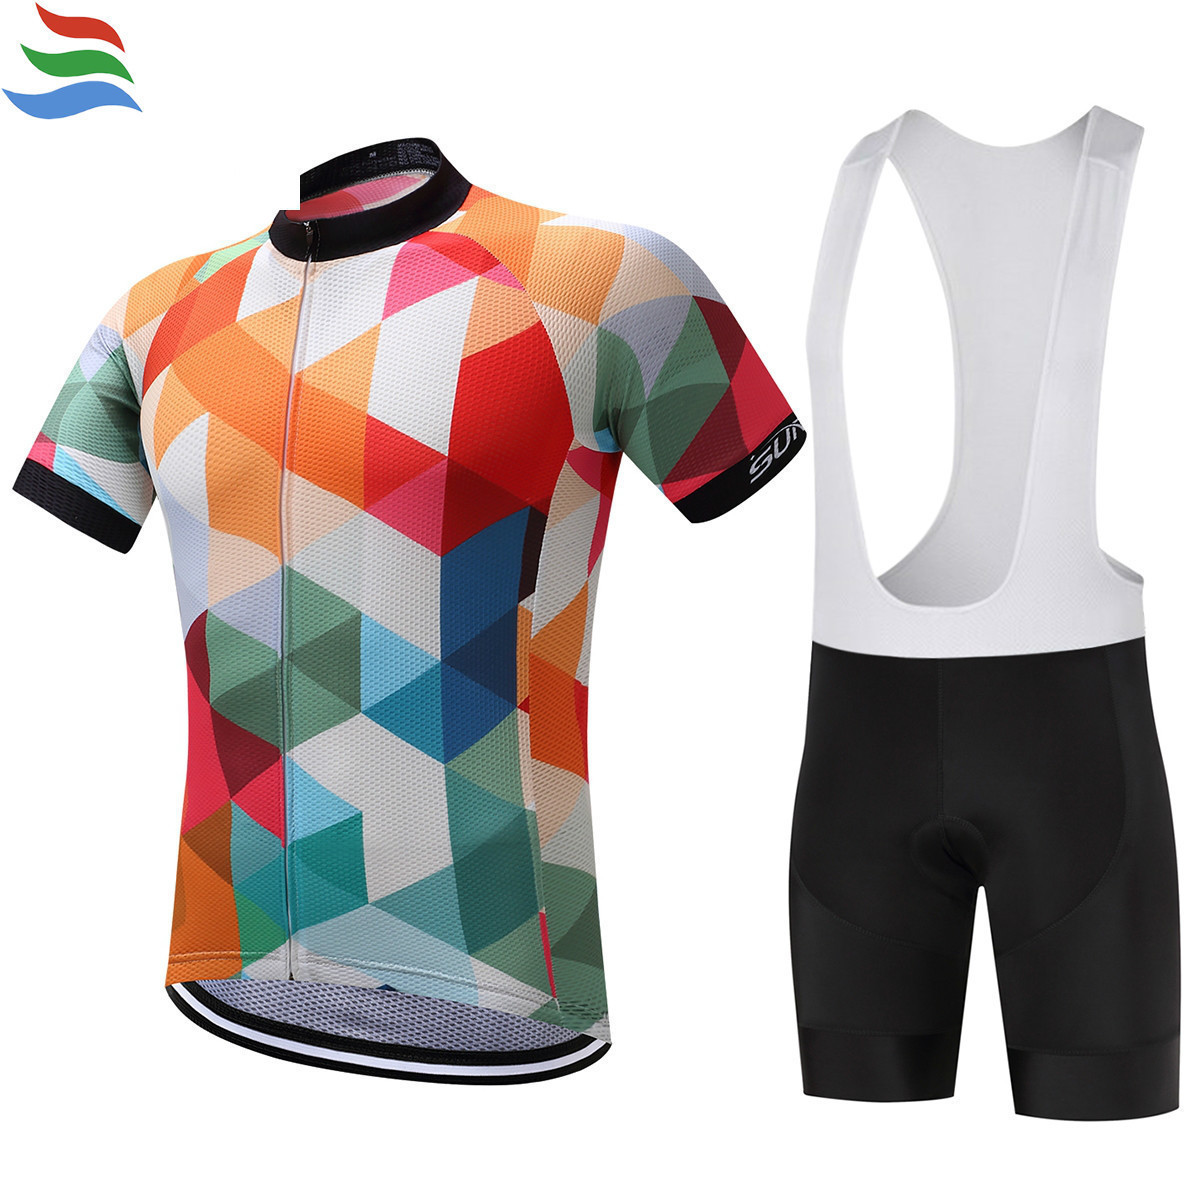 SUREA Cycling Jersey 100% Polyester gel Bicycle Clothing Short Sleeve Maillot Ropa Ciclismo Mountain Bike Clothes Set #384